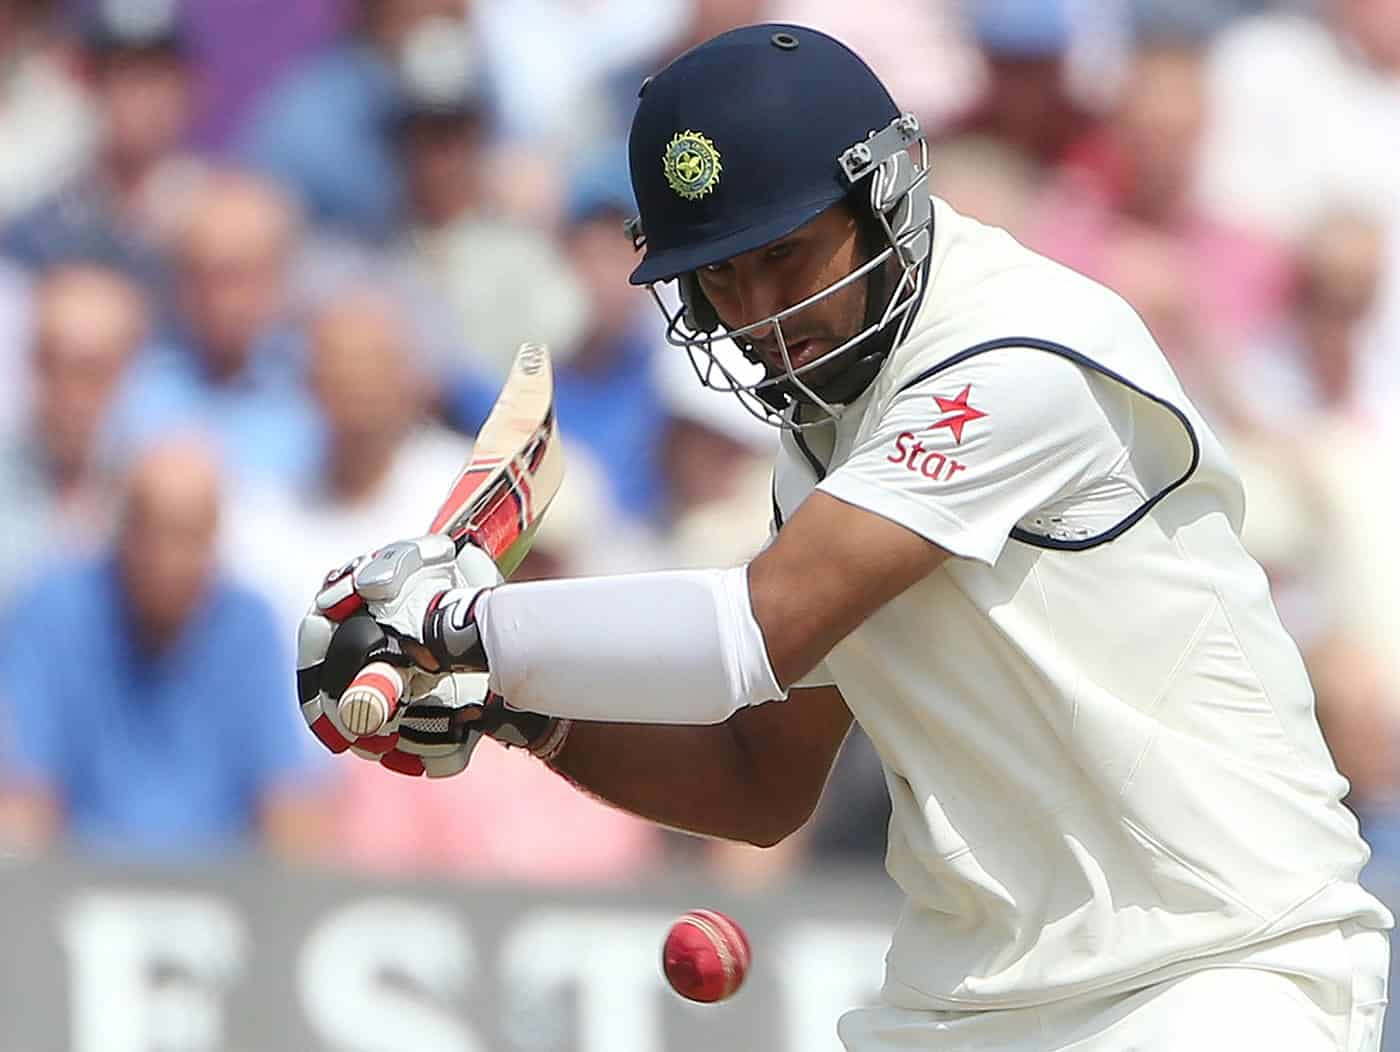 'I am Confident I'll be Able to Do Well' – Cheteshwar Pujara Express Desire To Play in The IPL